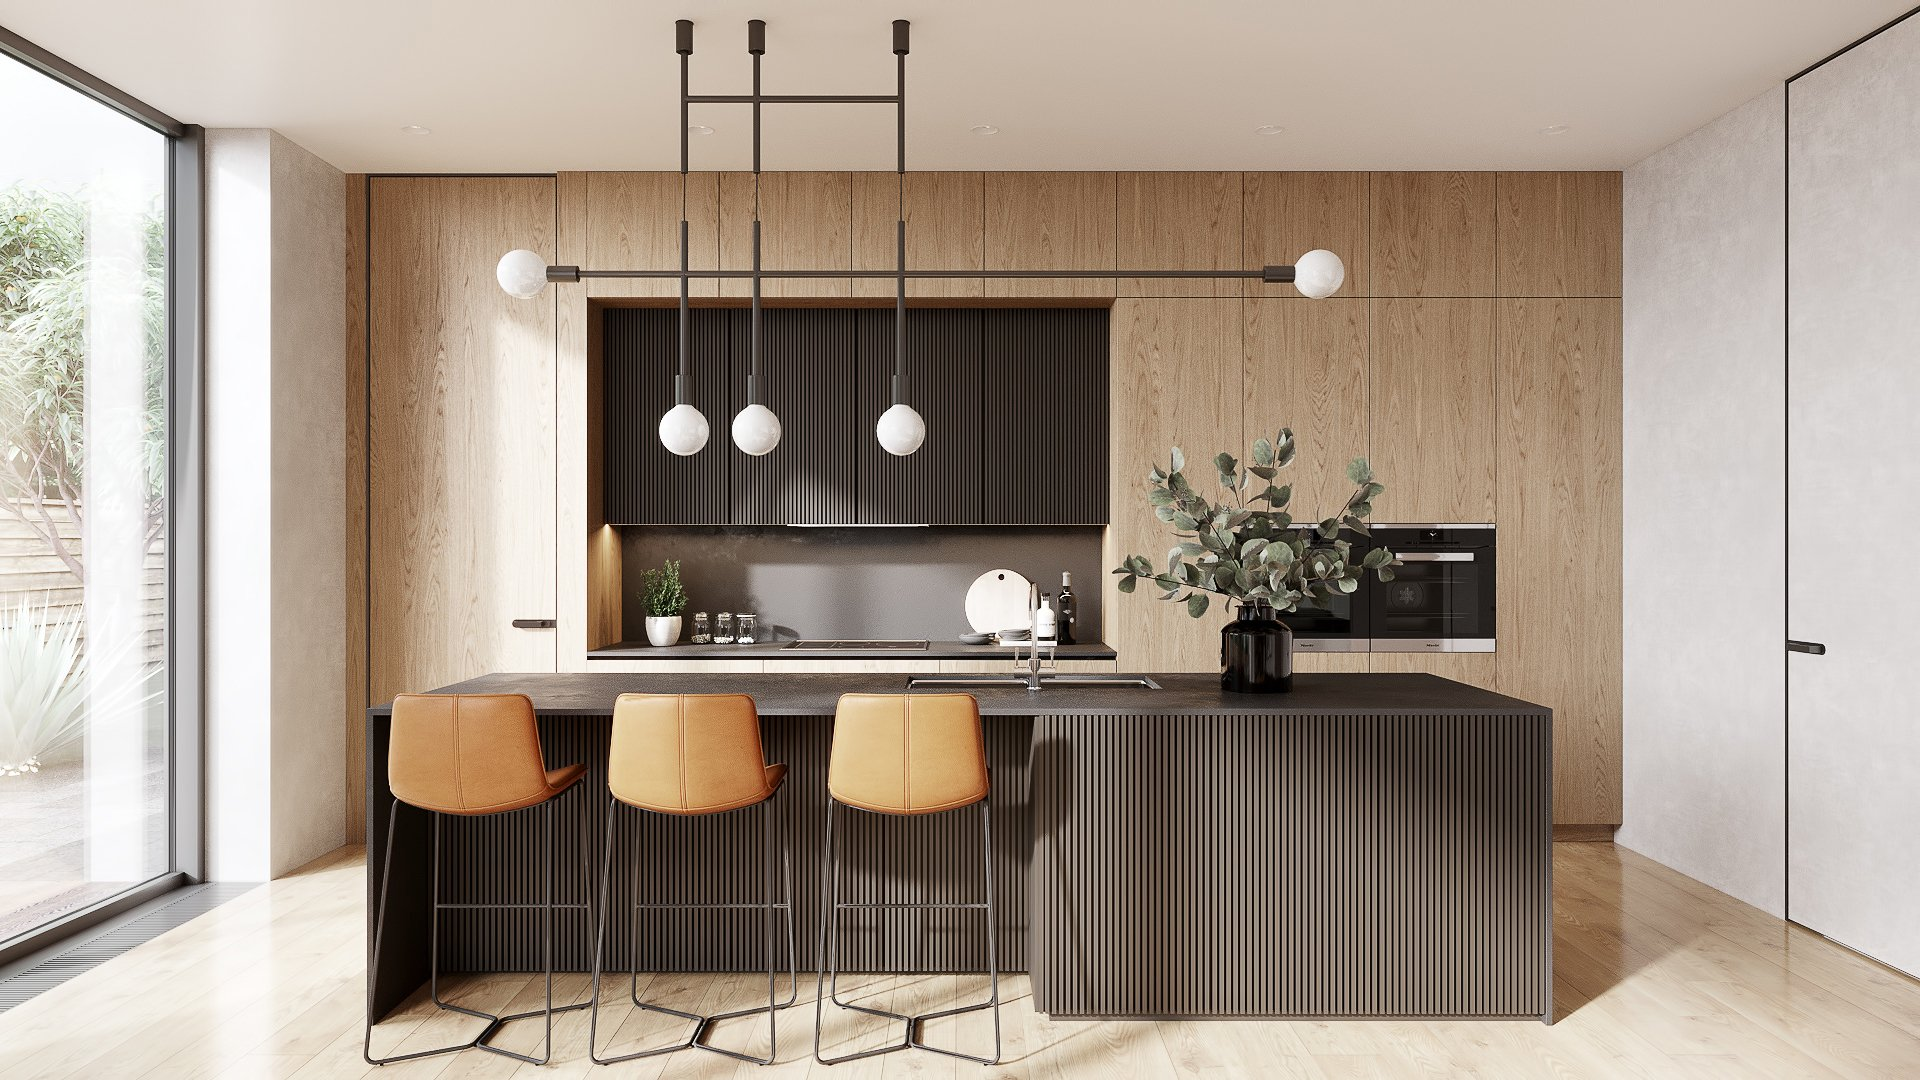 3D Interior Visualization of a Kitchen